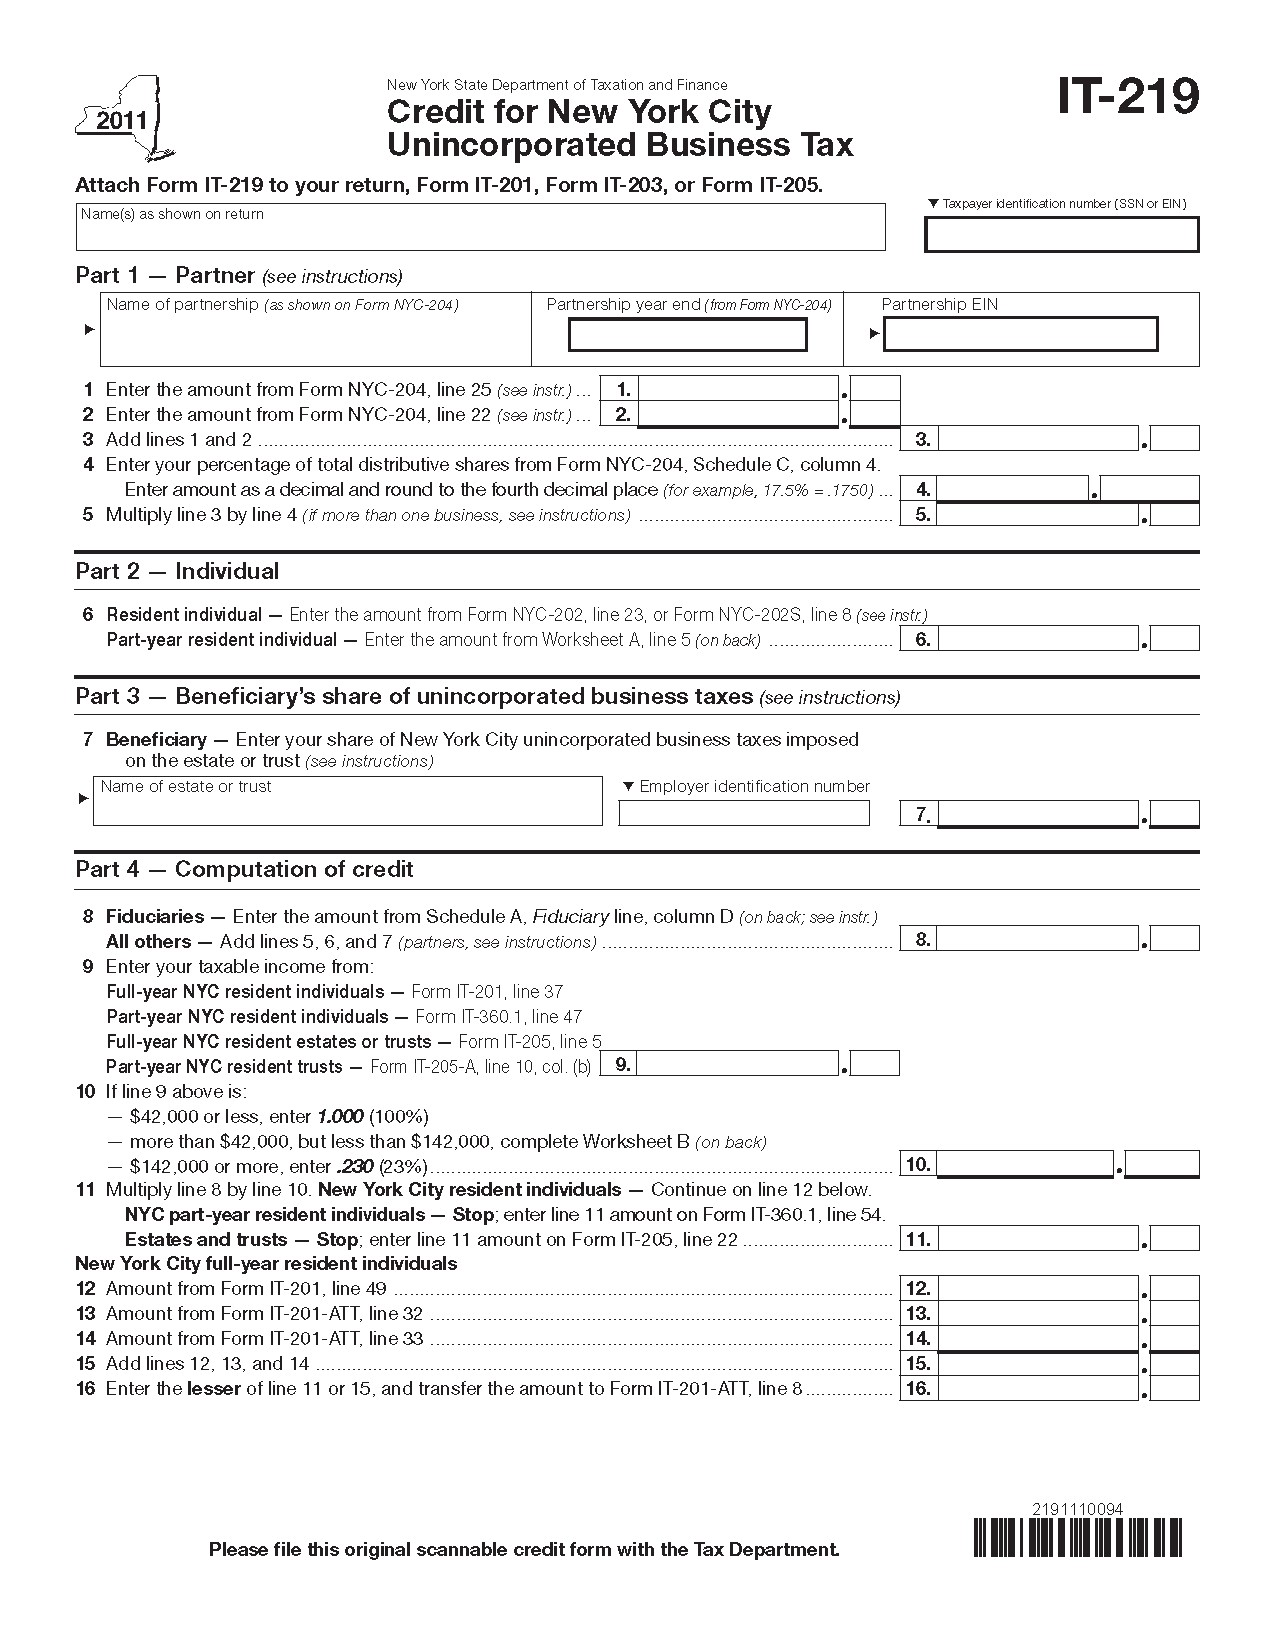 Form It 219 Fill In Credit For New York City